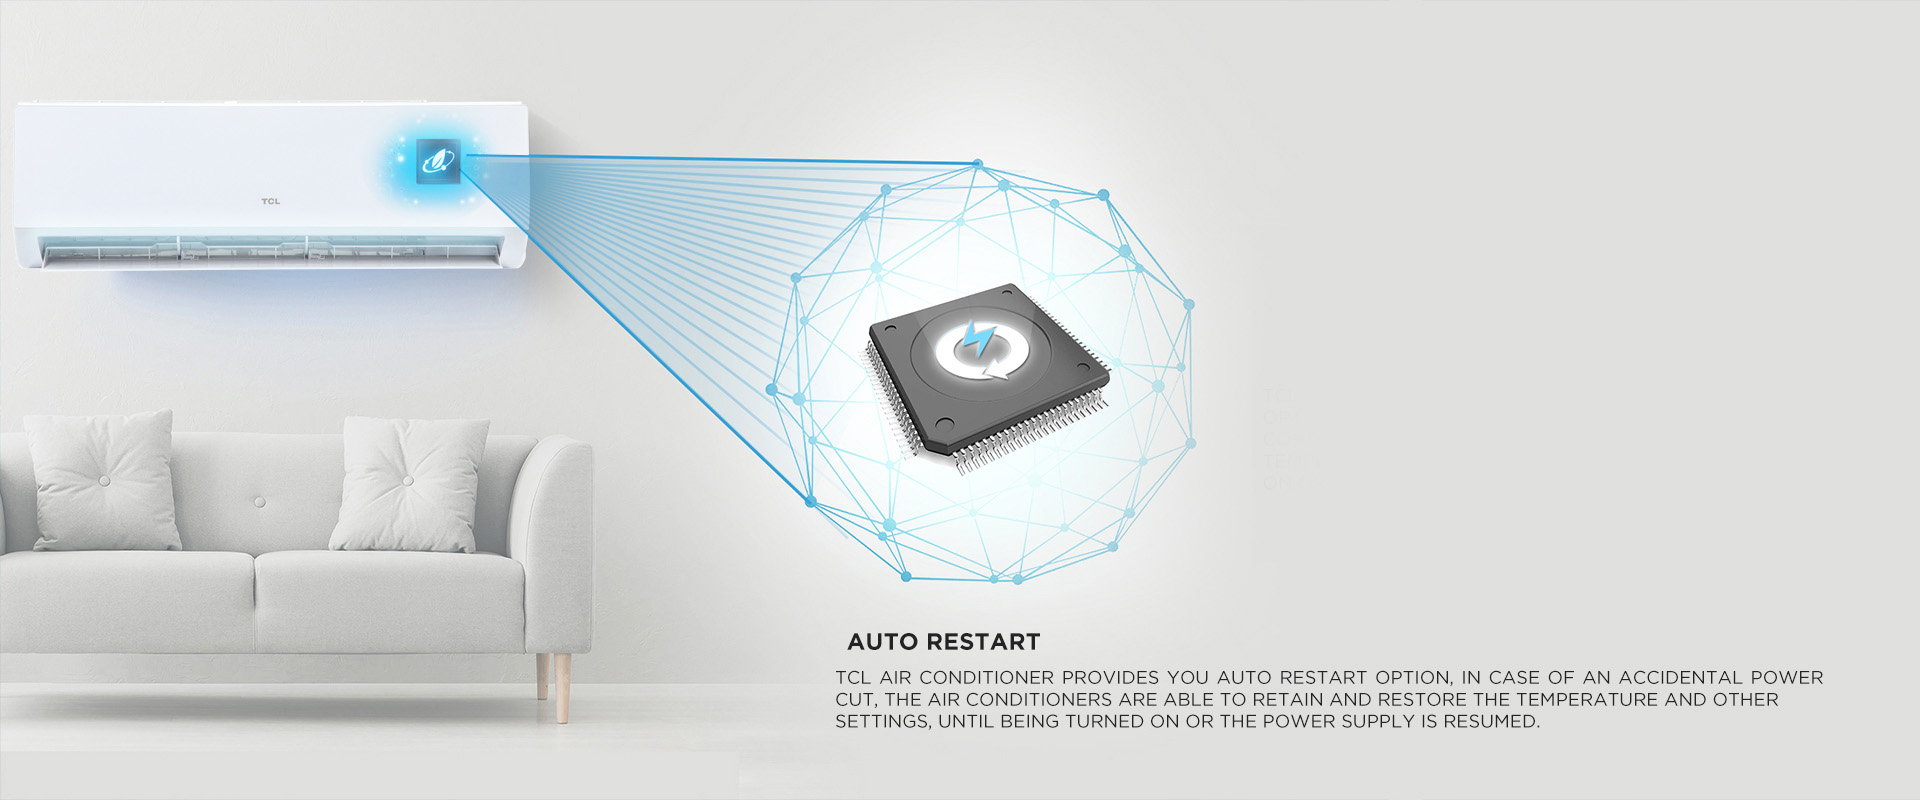 Auto Restart - TCL Air conditioner provides you Auto Restart option, in case of an accidental power cut, the air conditioners are able to retain and restore the temperature and other settings, until being turned on or the power supply is resumed.